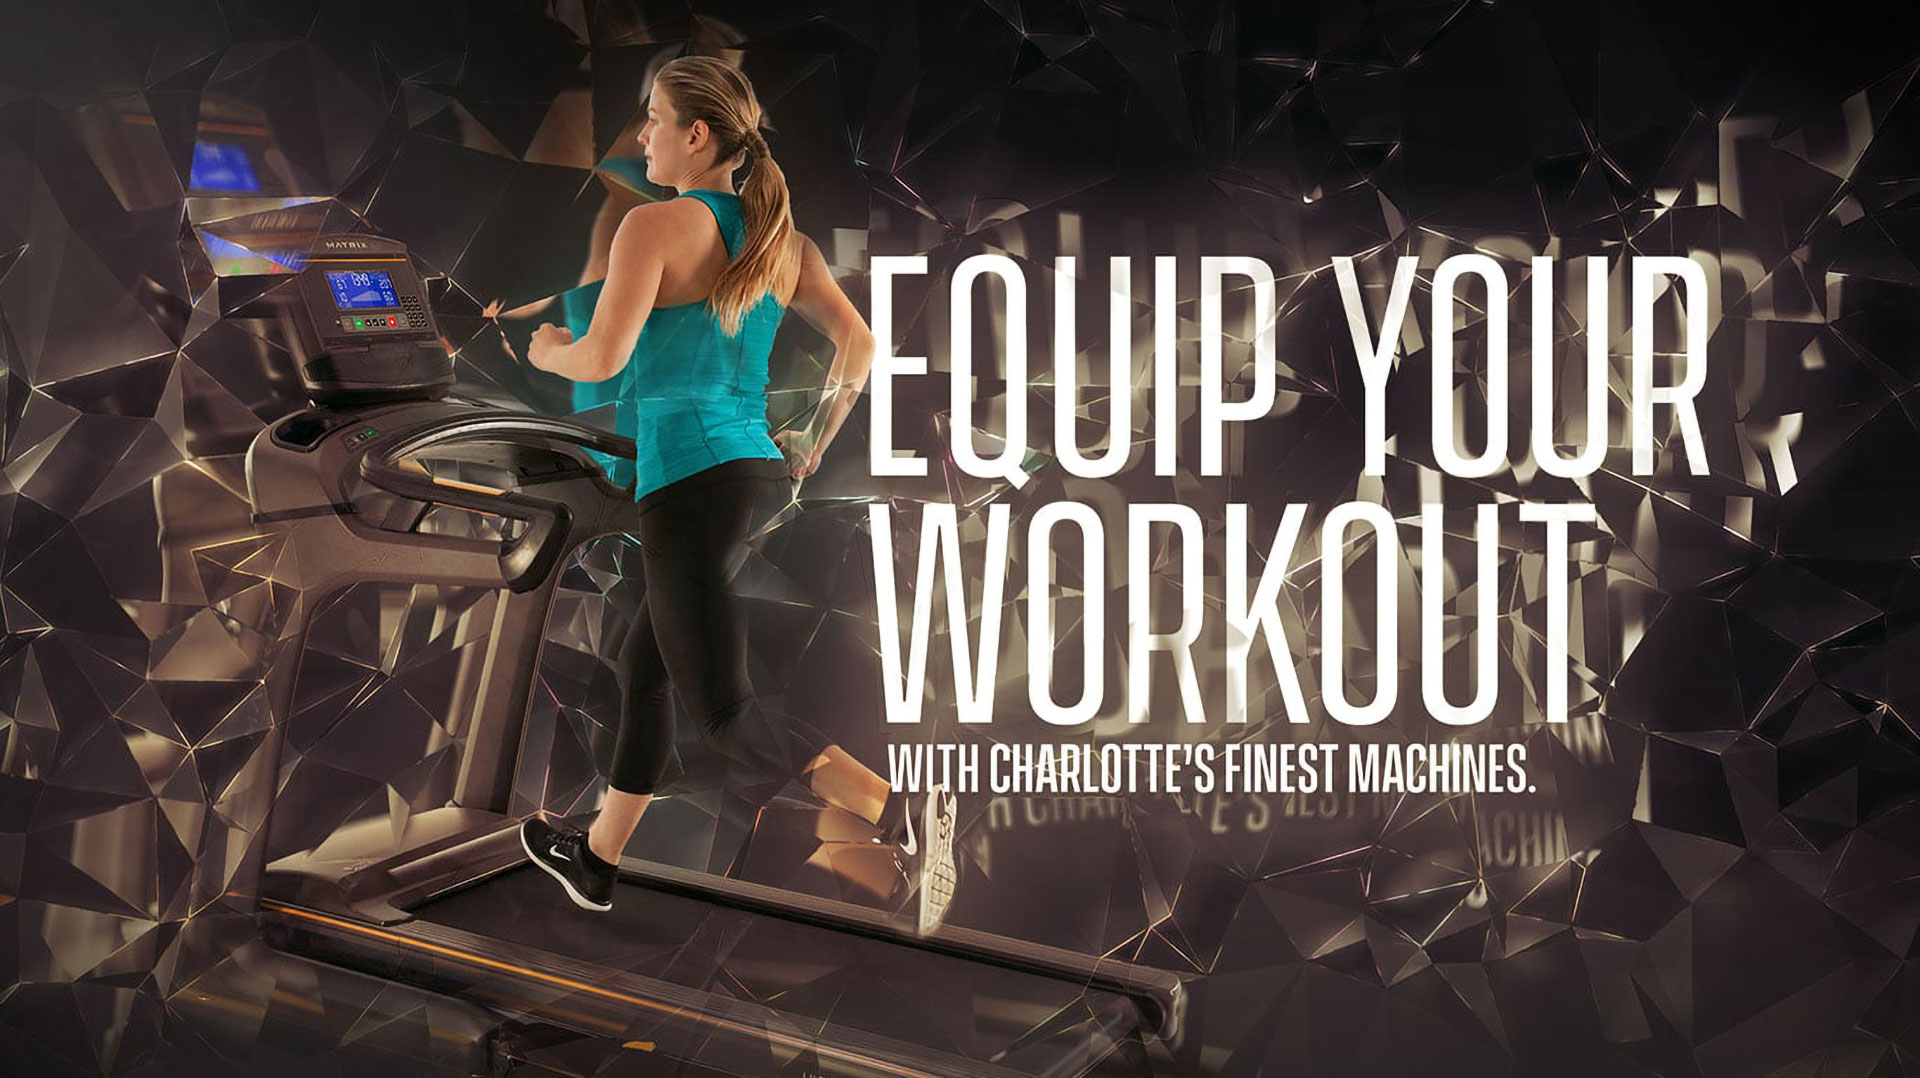 Equip your workout with Charlotte's finest fitness equipment machines.